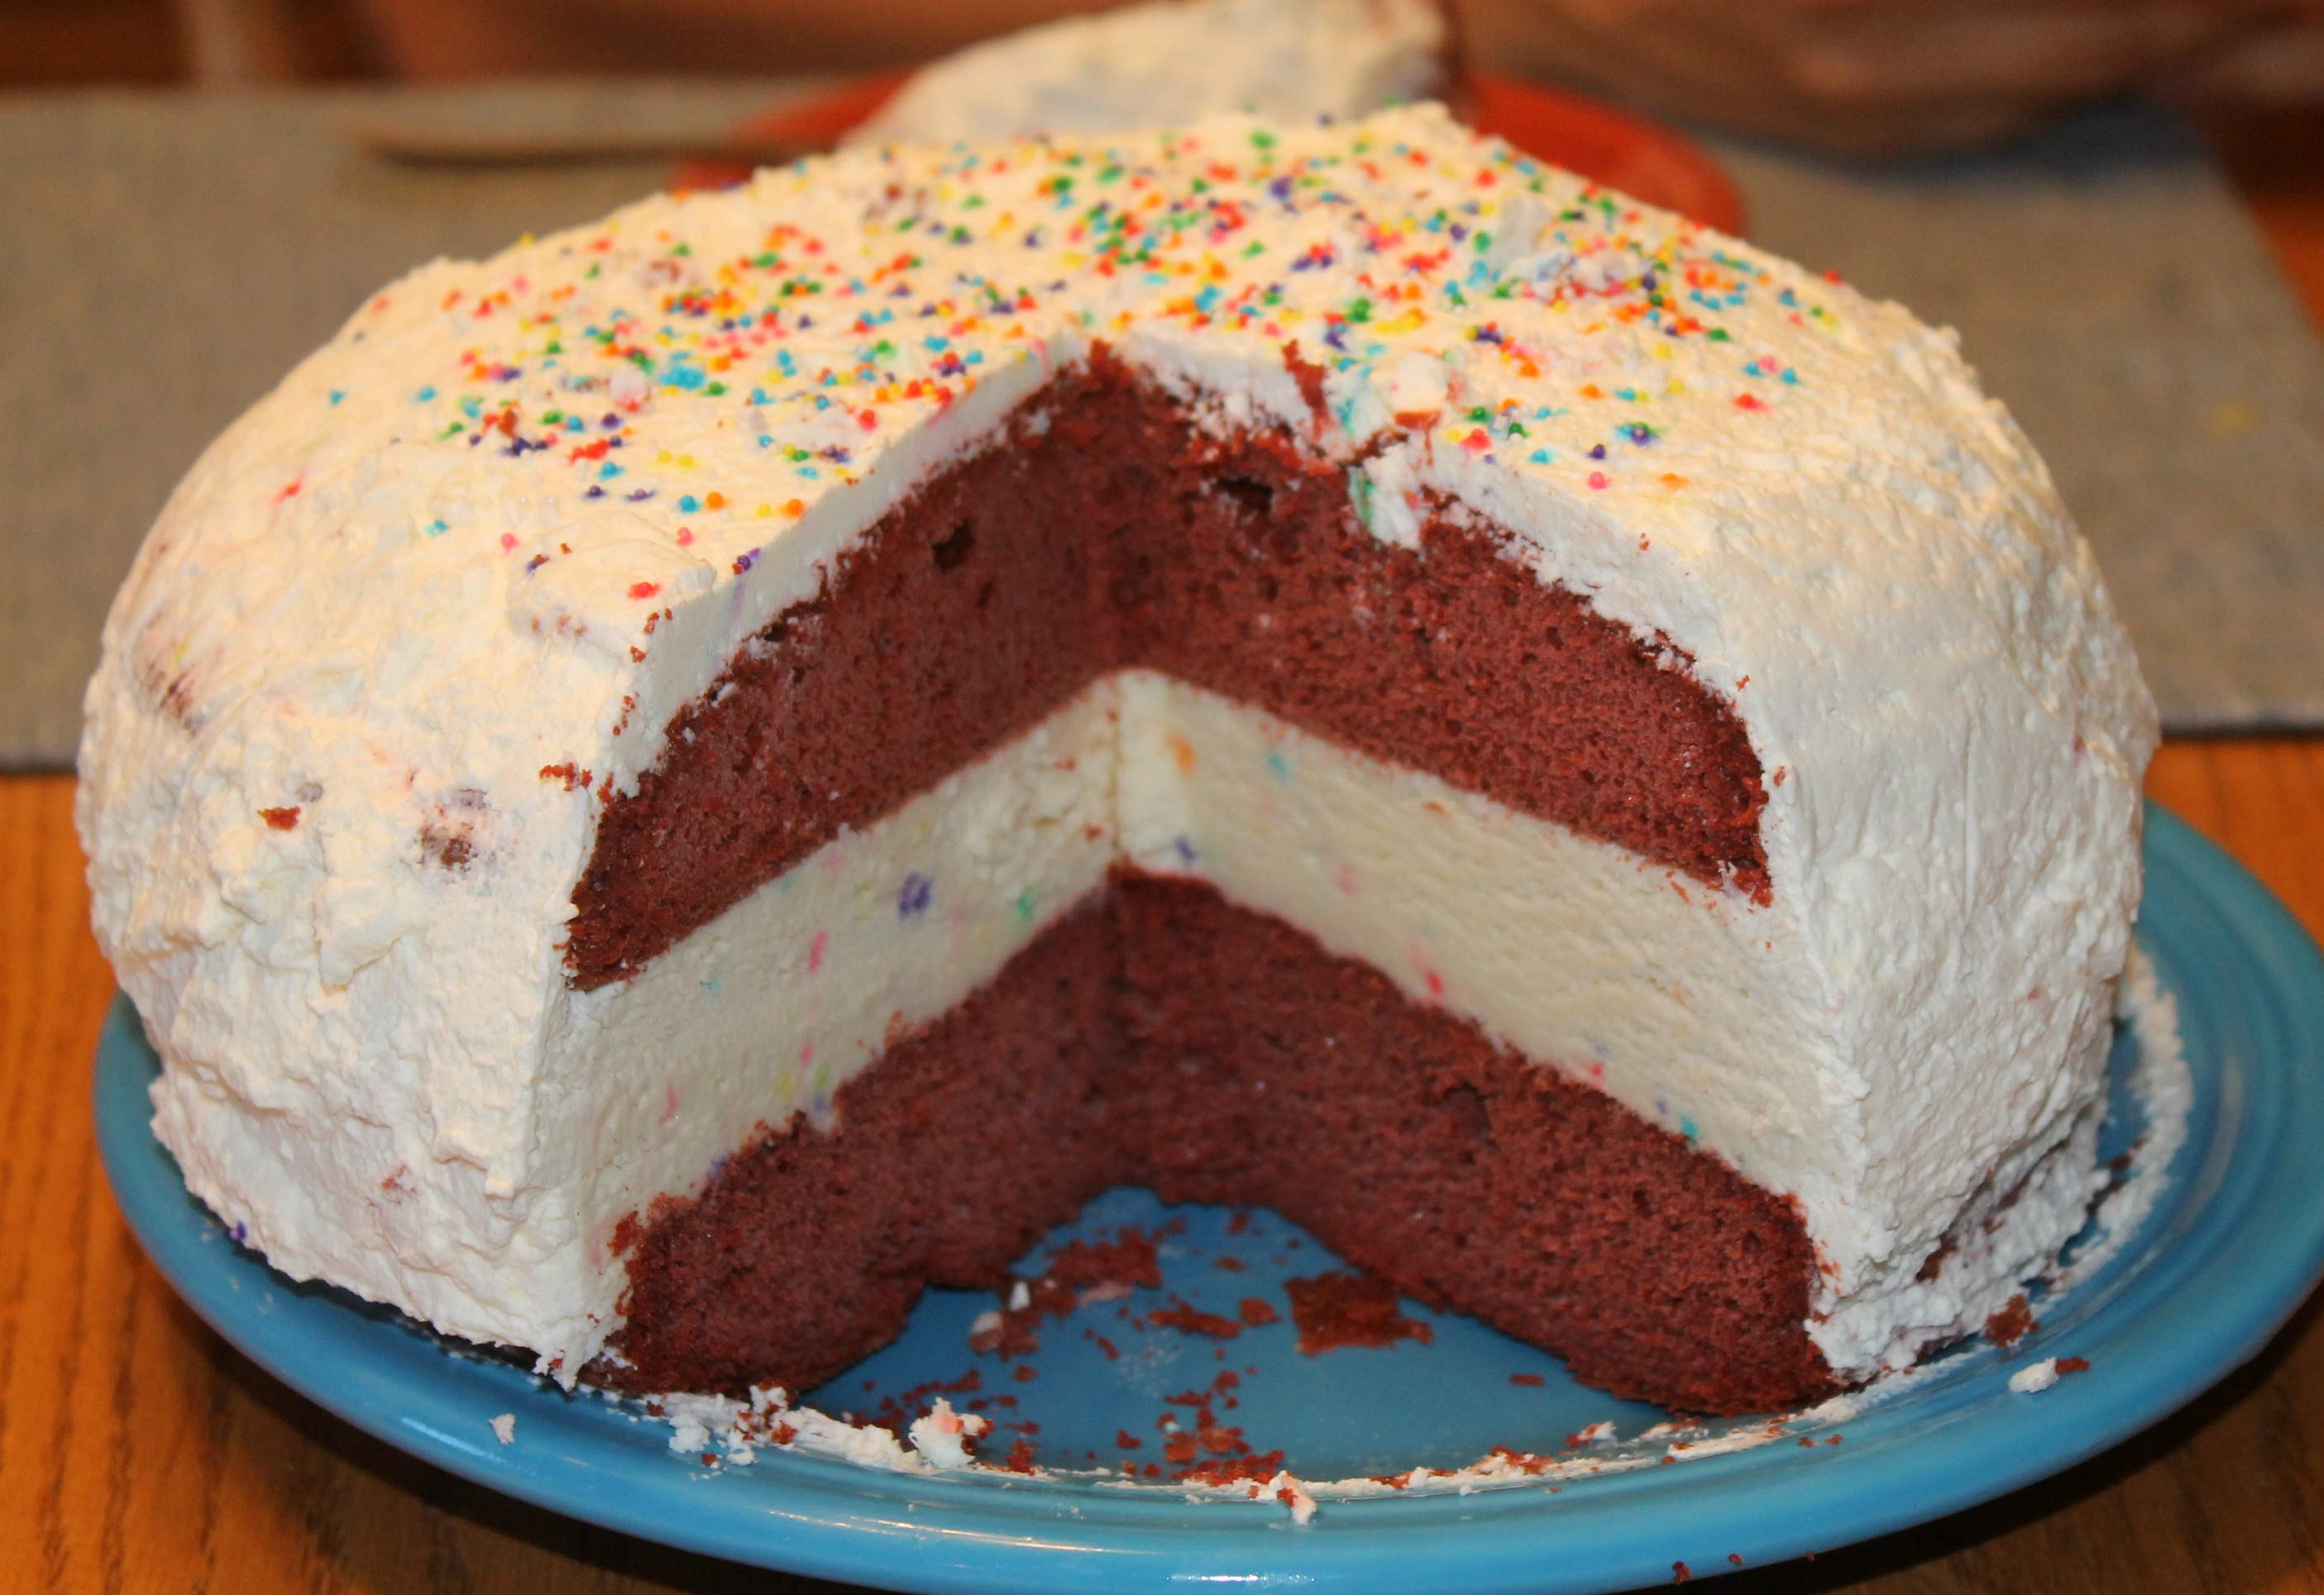 Cake Recipe With Icing In The Batter: Home Amazing